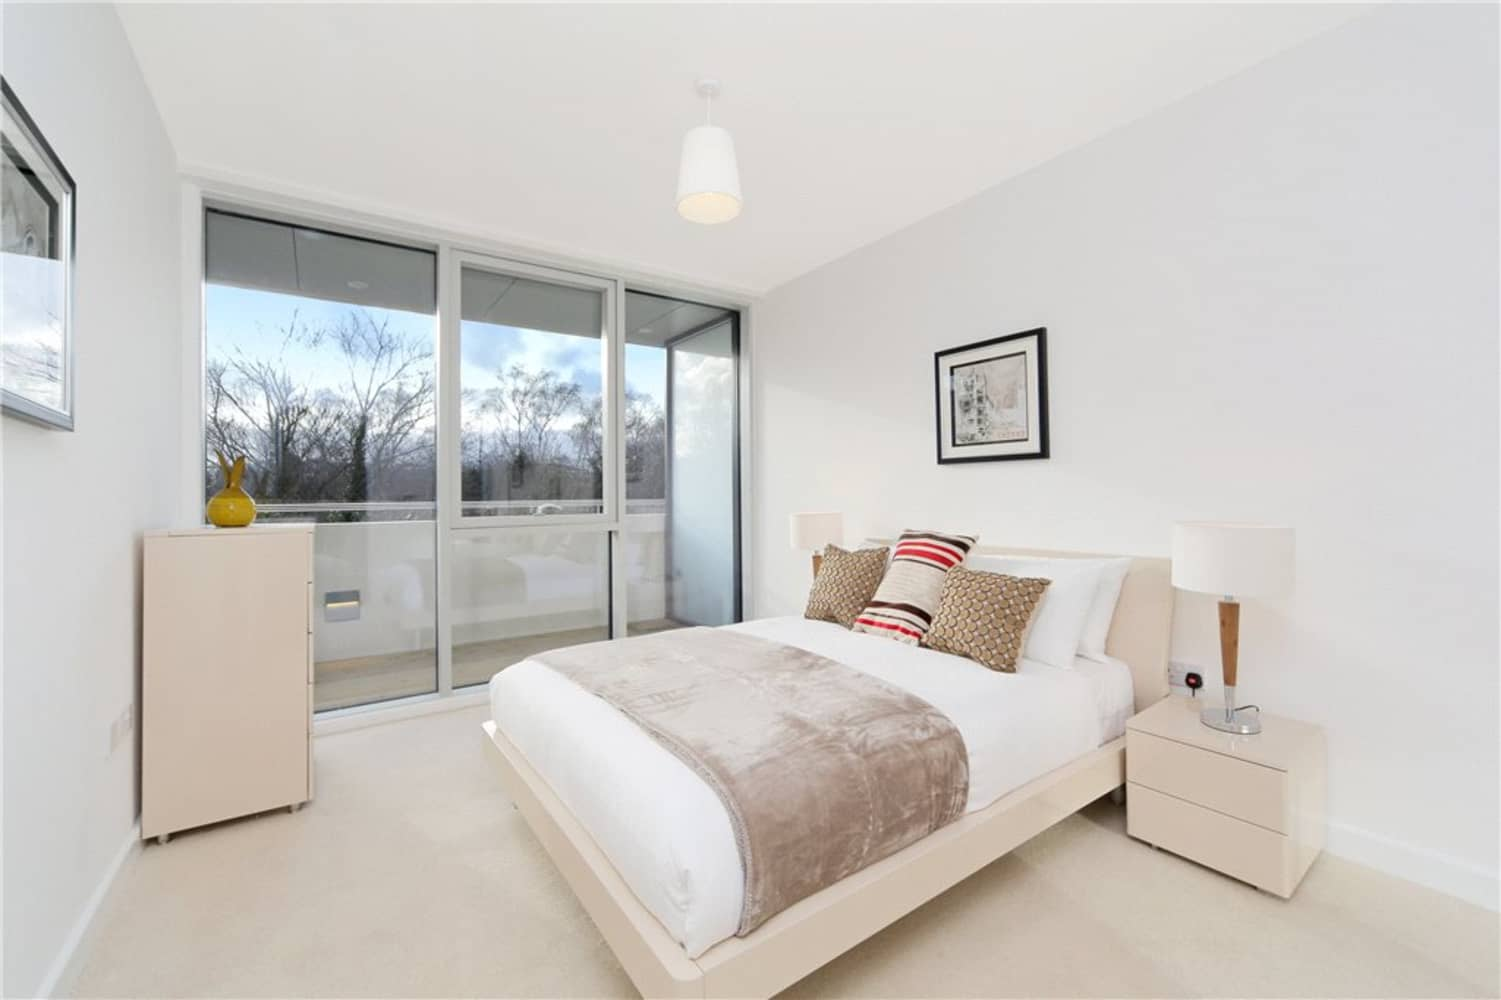 Apartment Chiswick, W4 - Edmunds House Colonial Drive W4 - 00